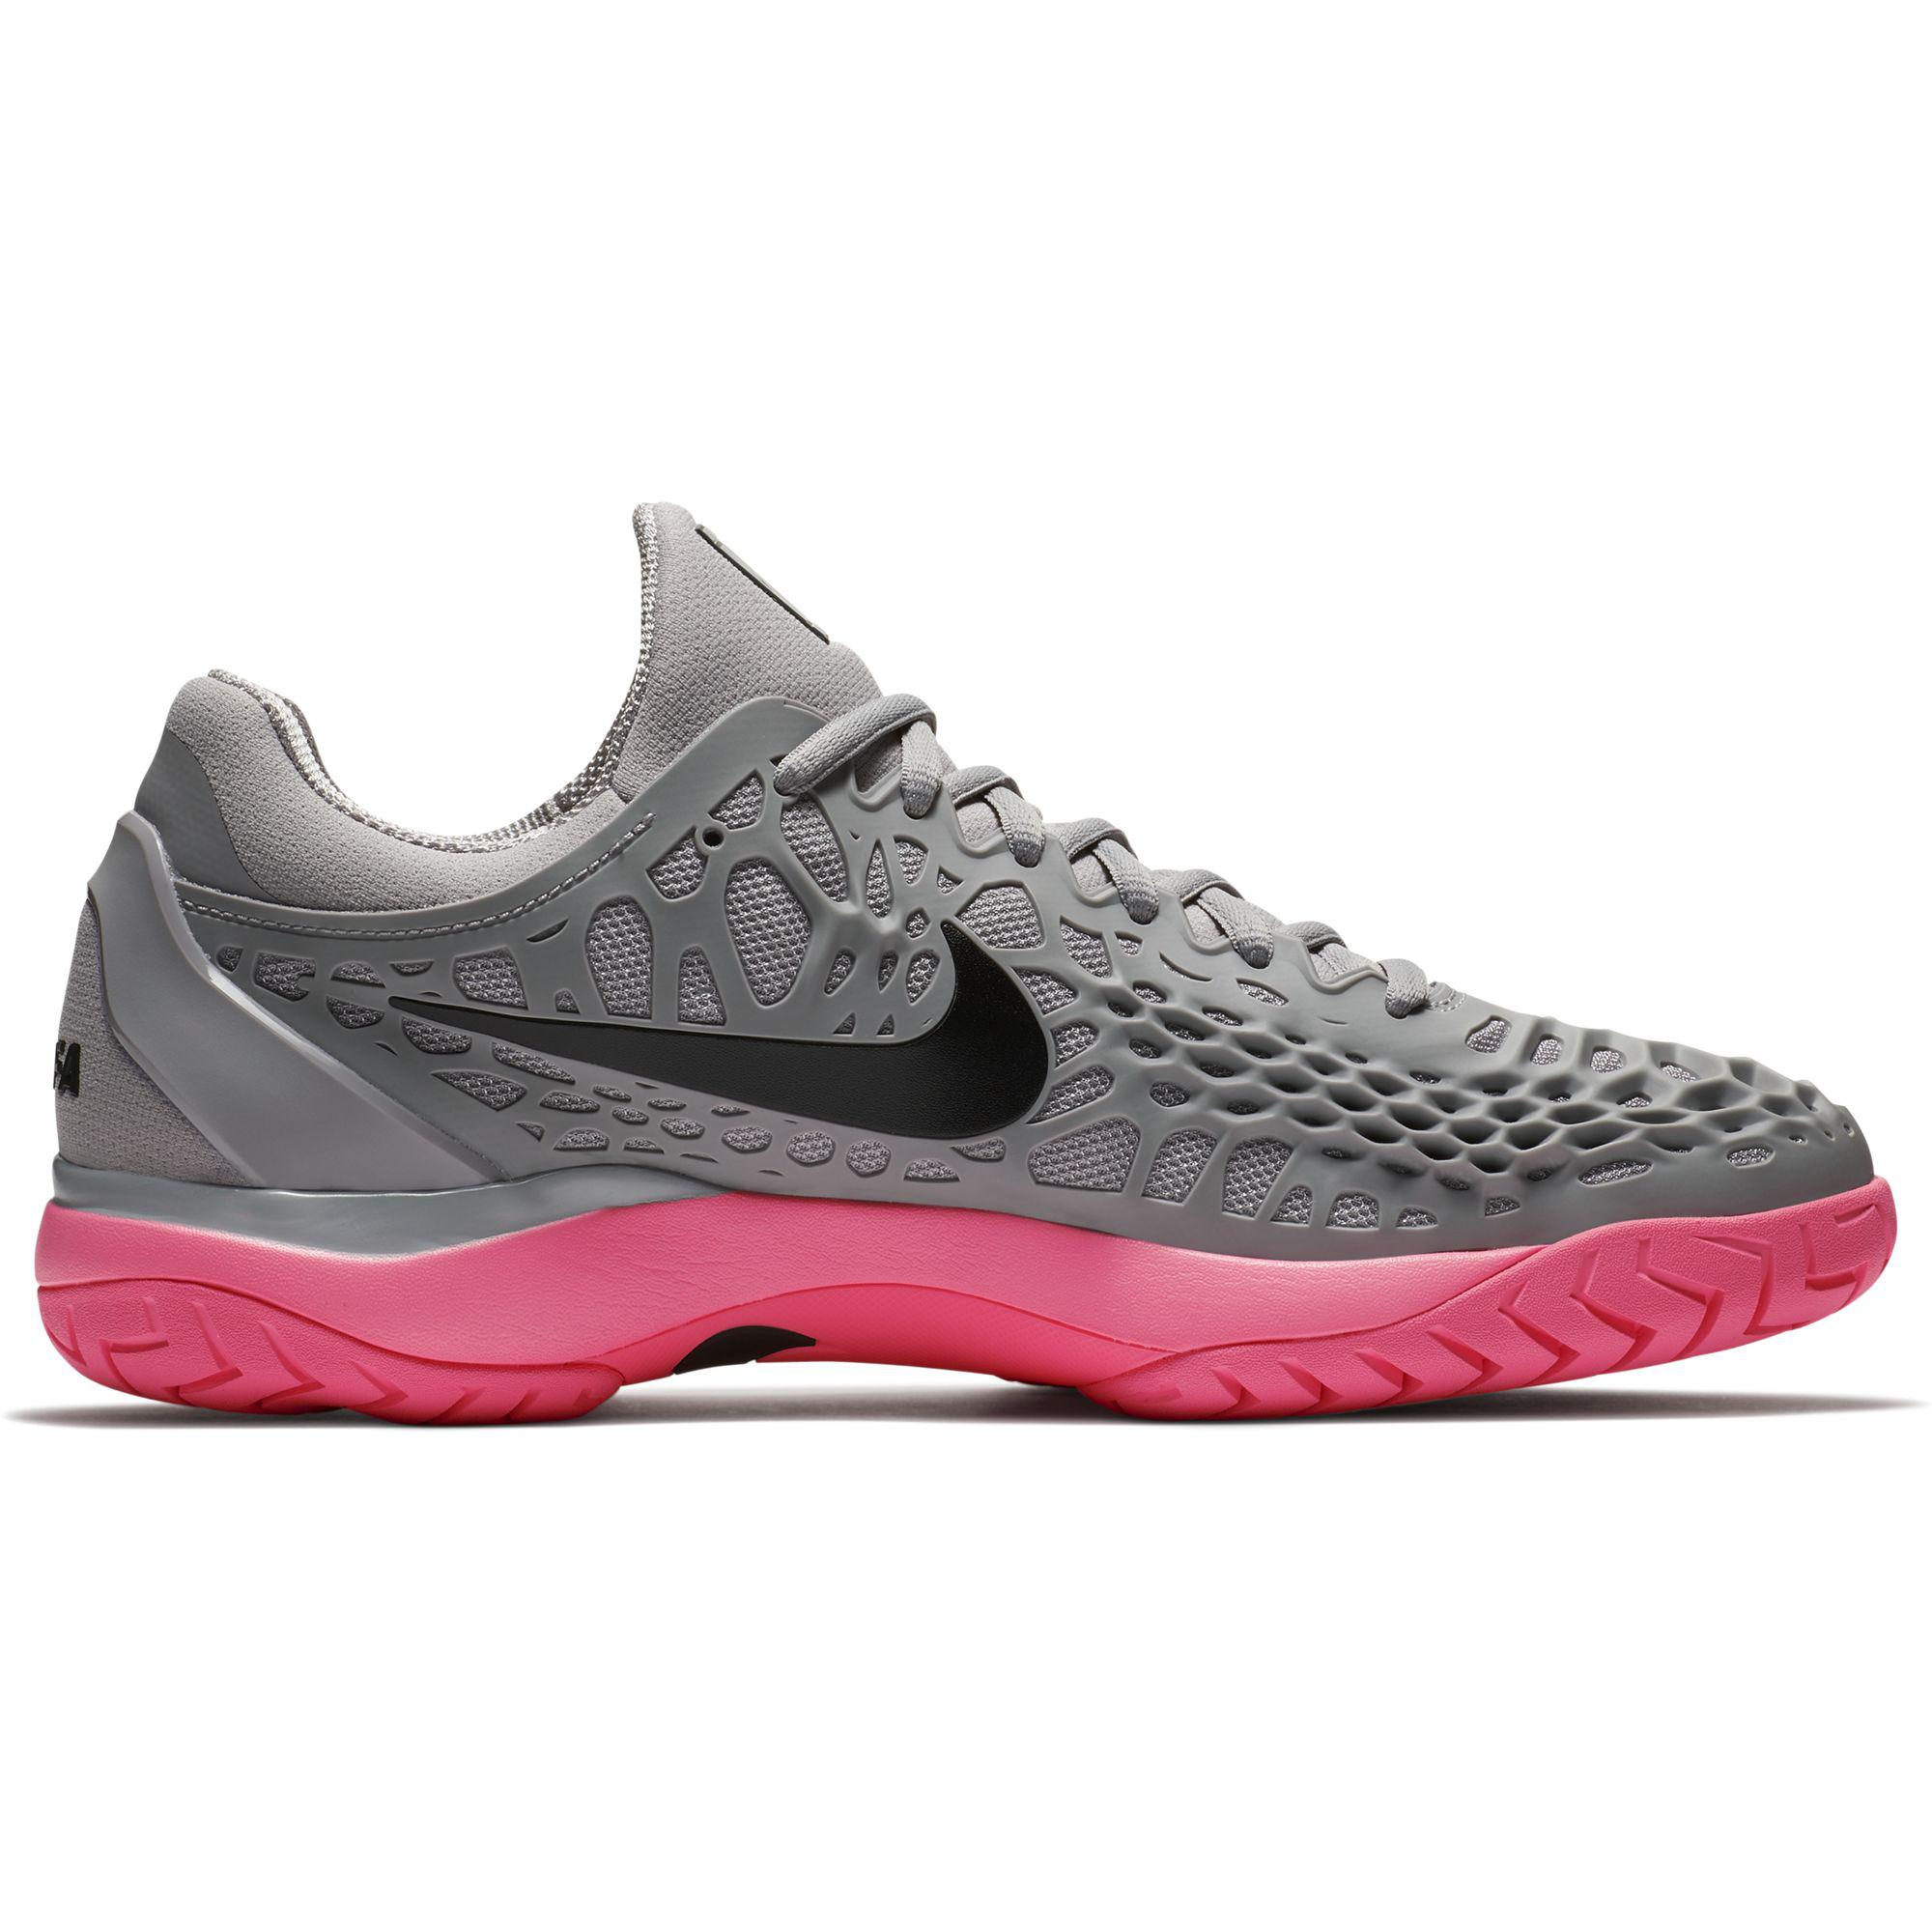 fca4eba291c48 Nike Mens Air Zoom Cage 3 Rafa Tennis Shoes - Grey Sunset Pulse -  Tennisnuts.com